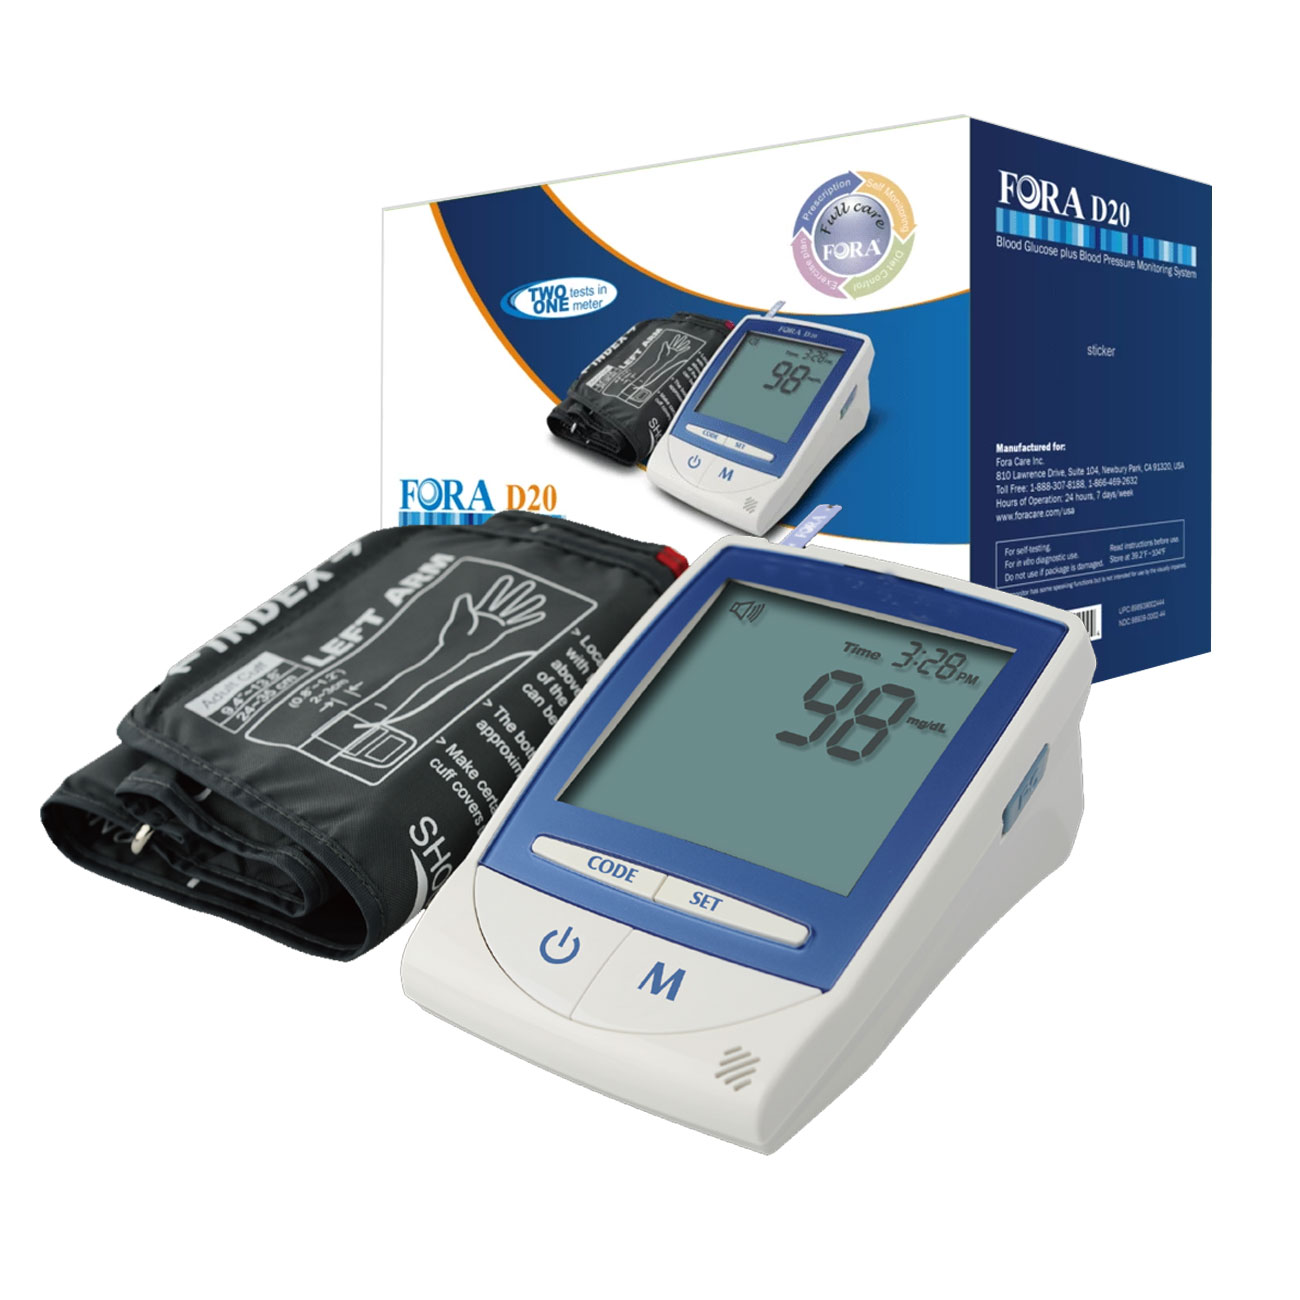 D20 2 in 1 TALKING Blood Glucose and Blood Pressure Monitor